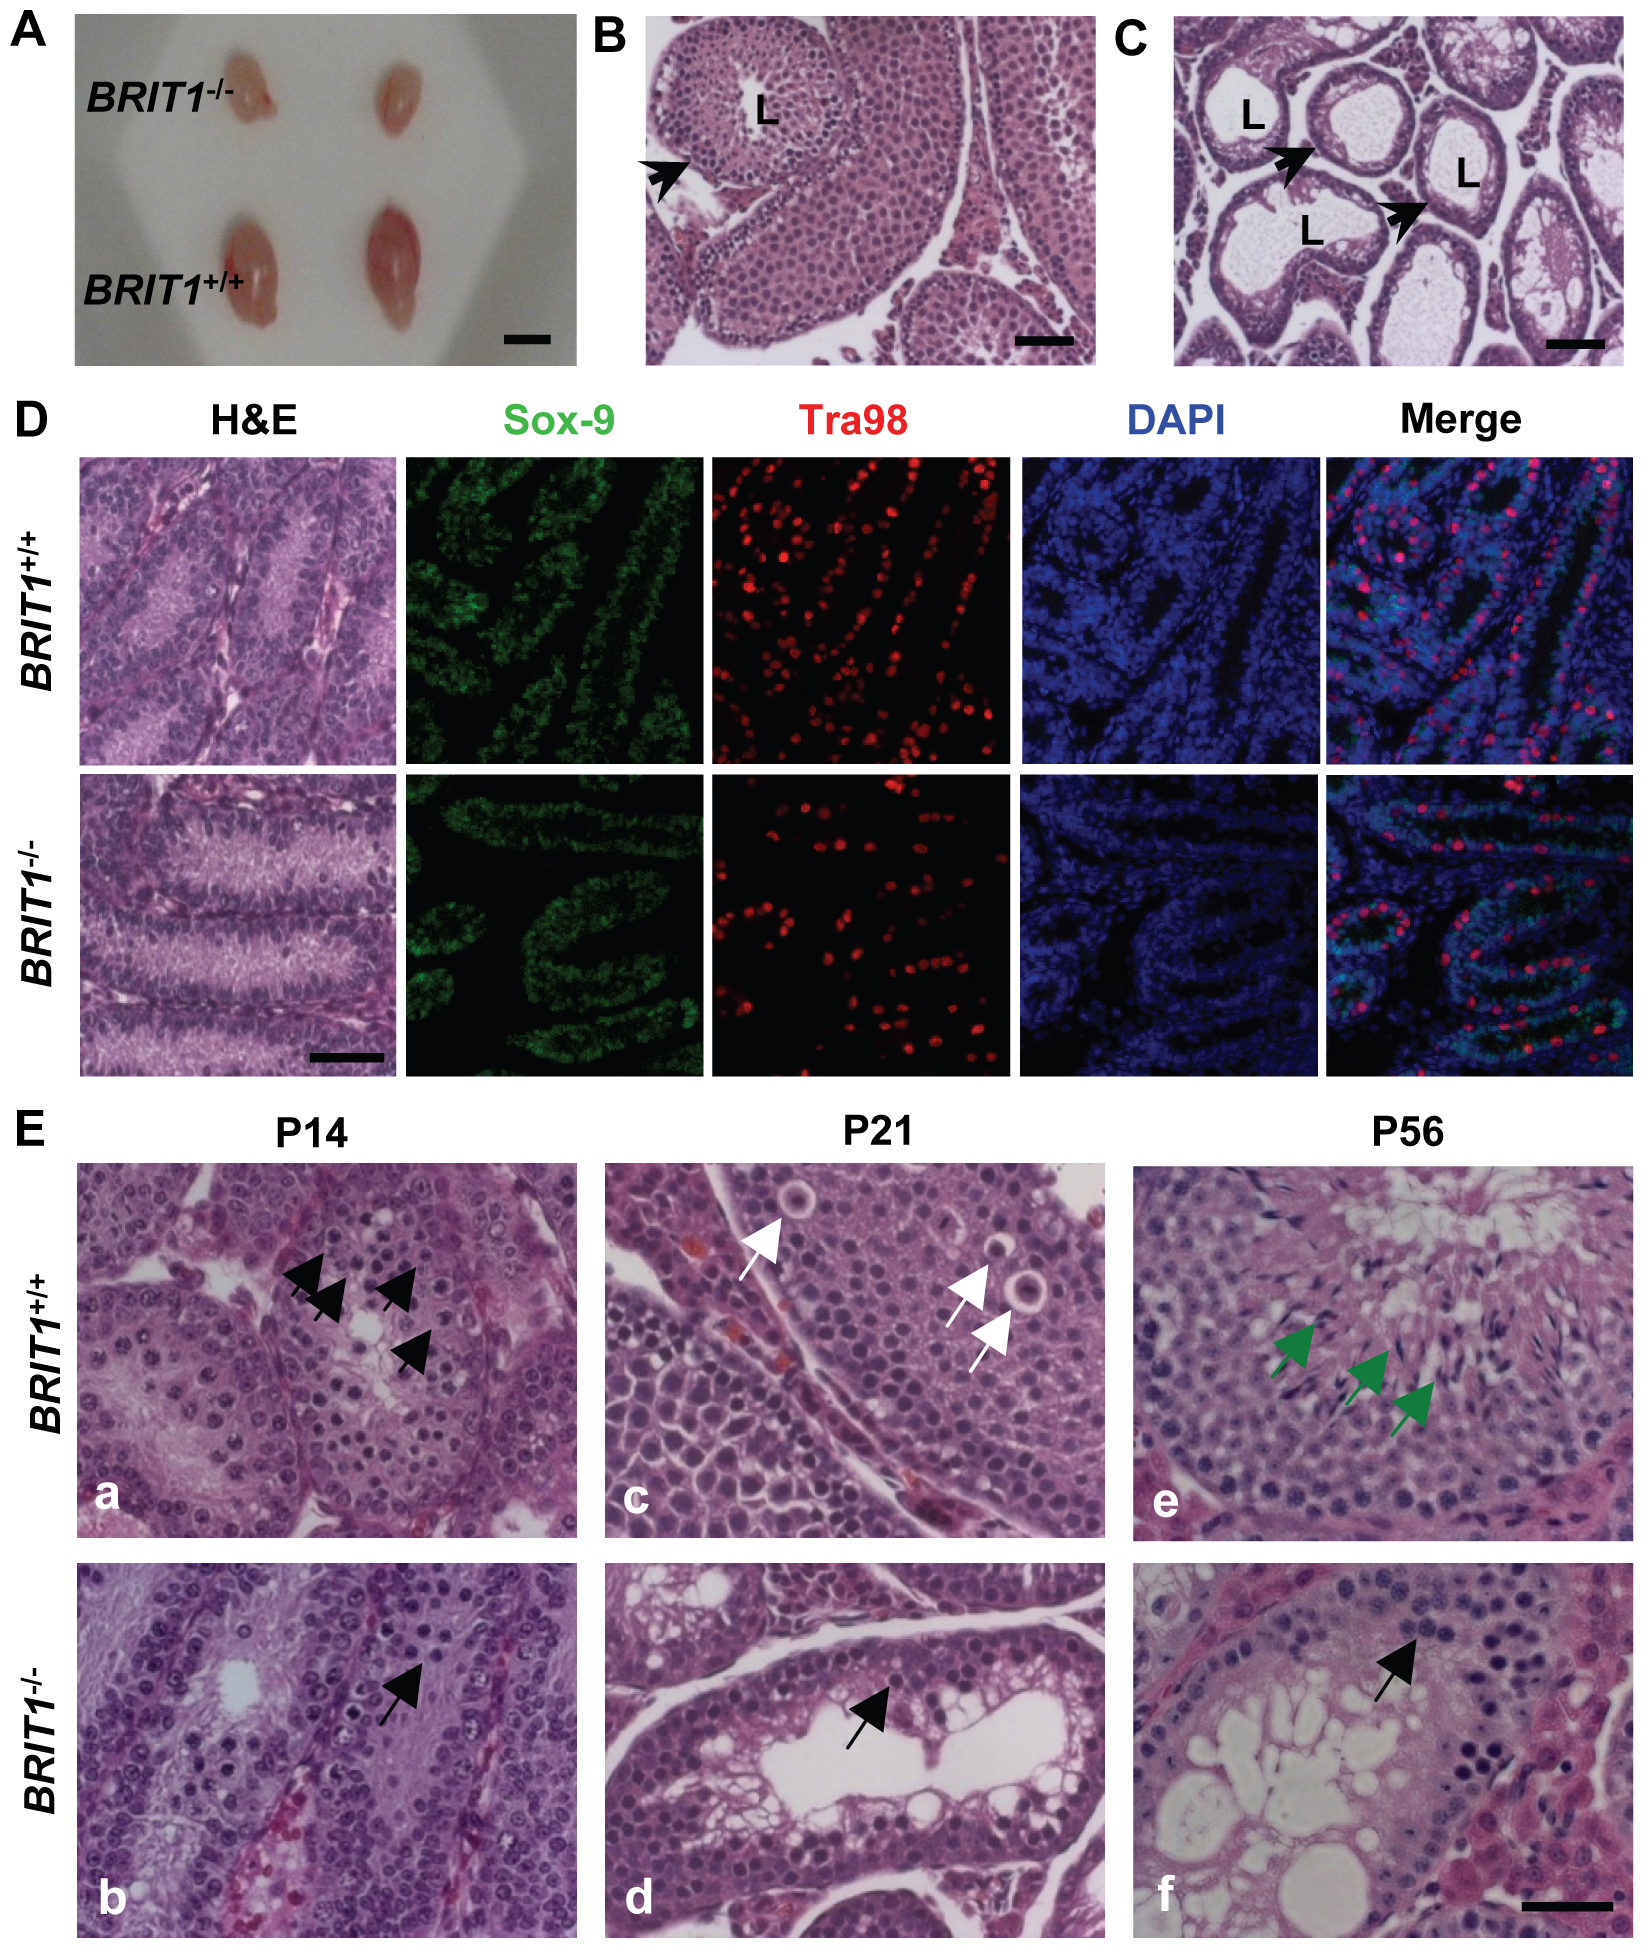 <i>BRIT1</i>-deficient male were infertile and exhibited meiotic defects.